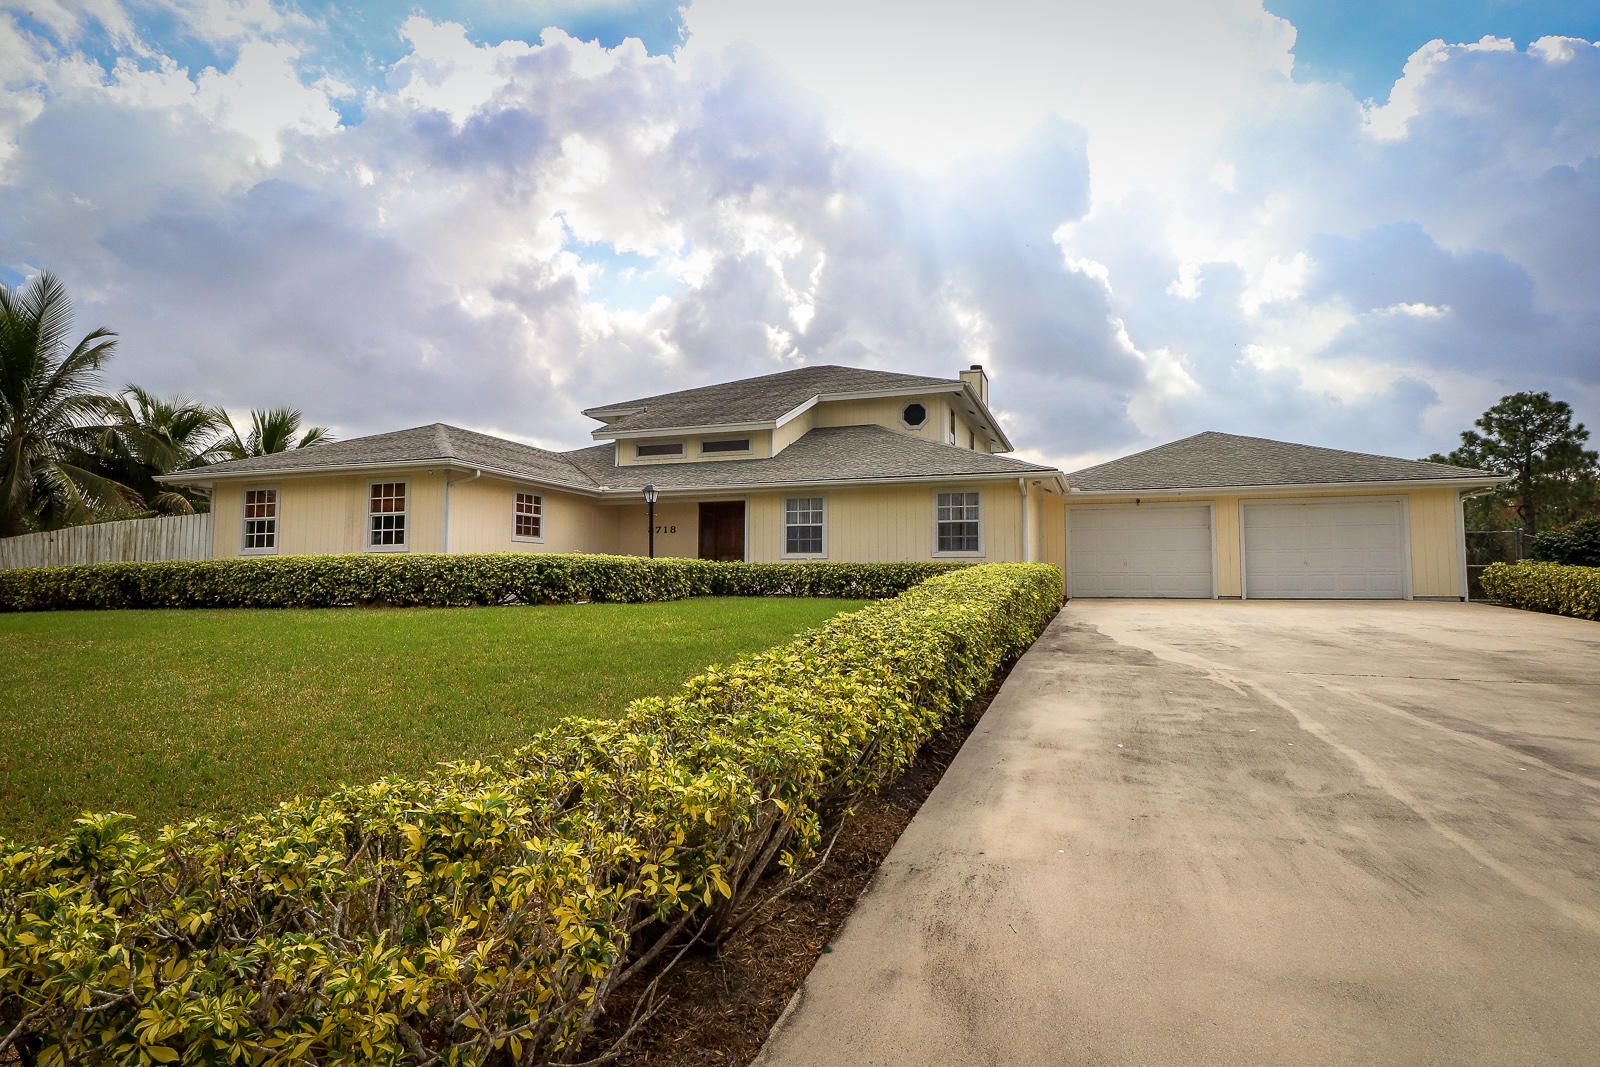 PARCEL Q-441, PALM BEACH COUNTRY ESTATES